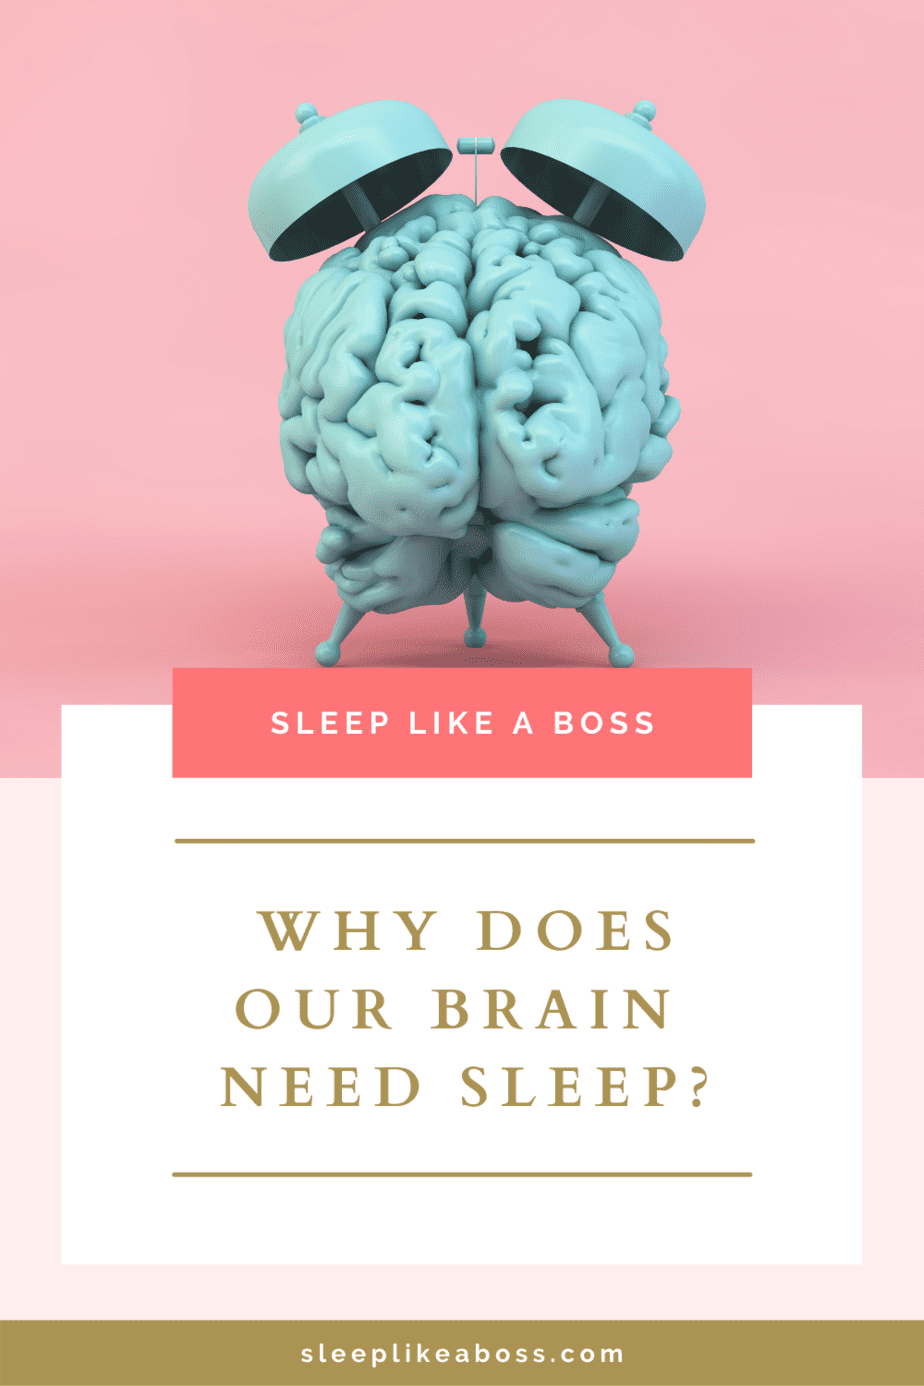 Why does our brain need sleep